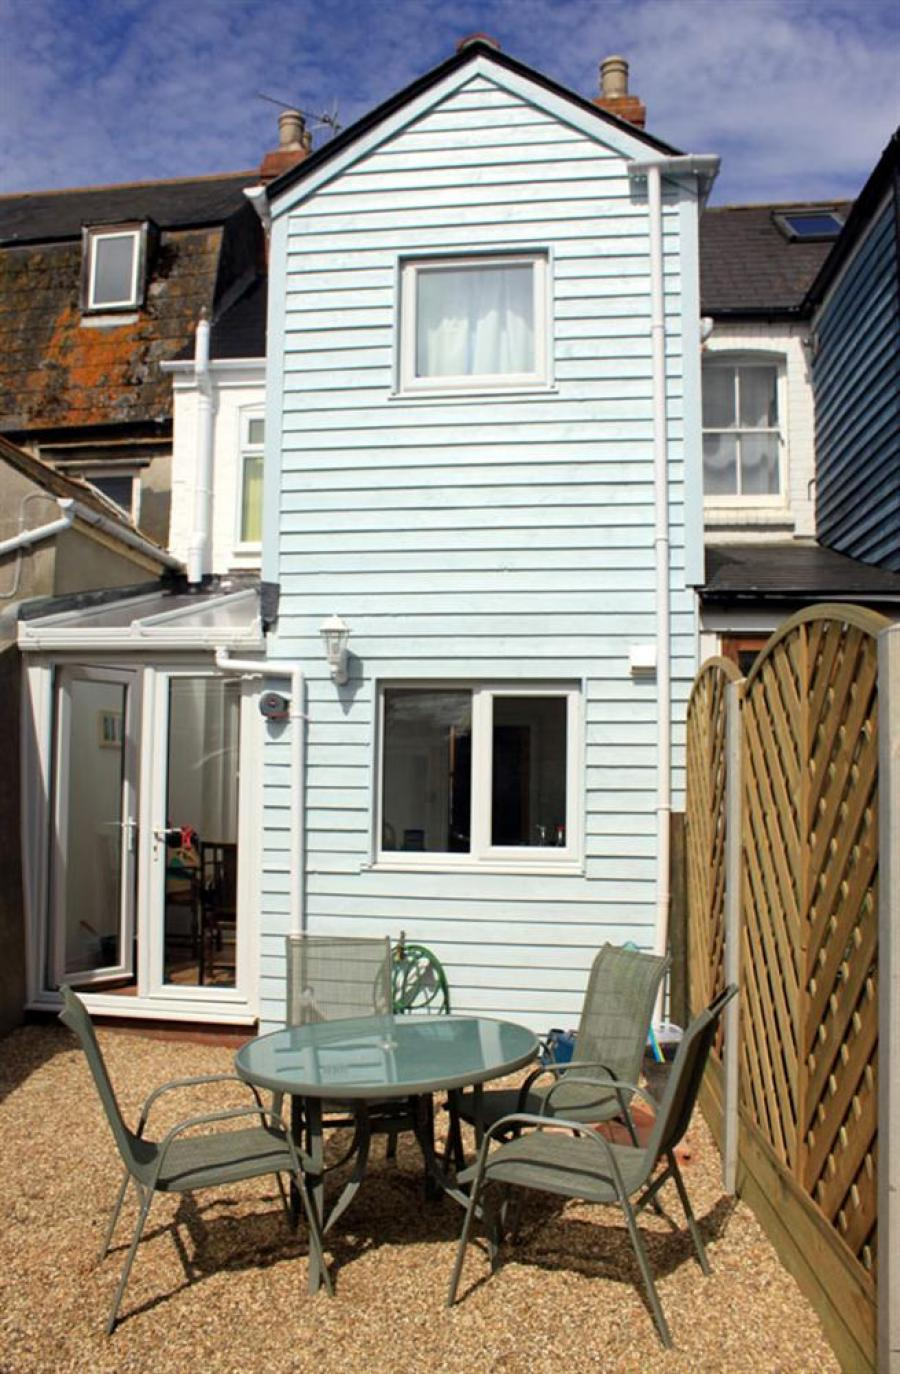 Seaholme Holiday Cottage Weymouth16